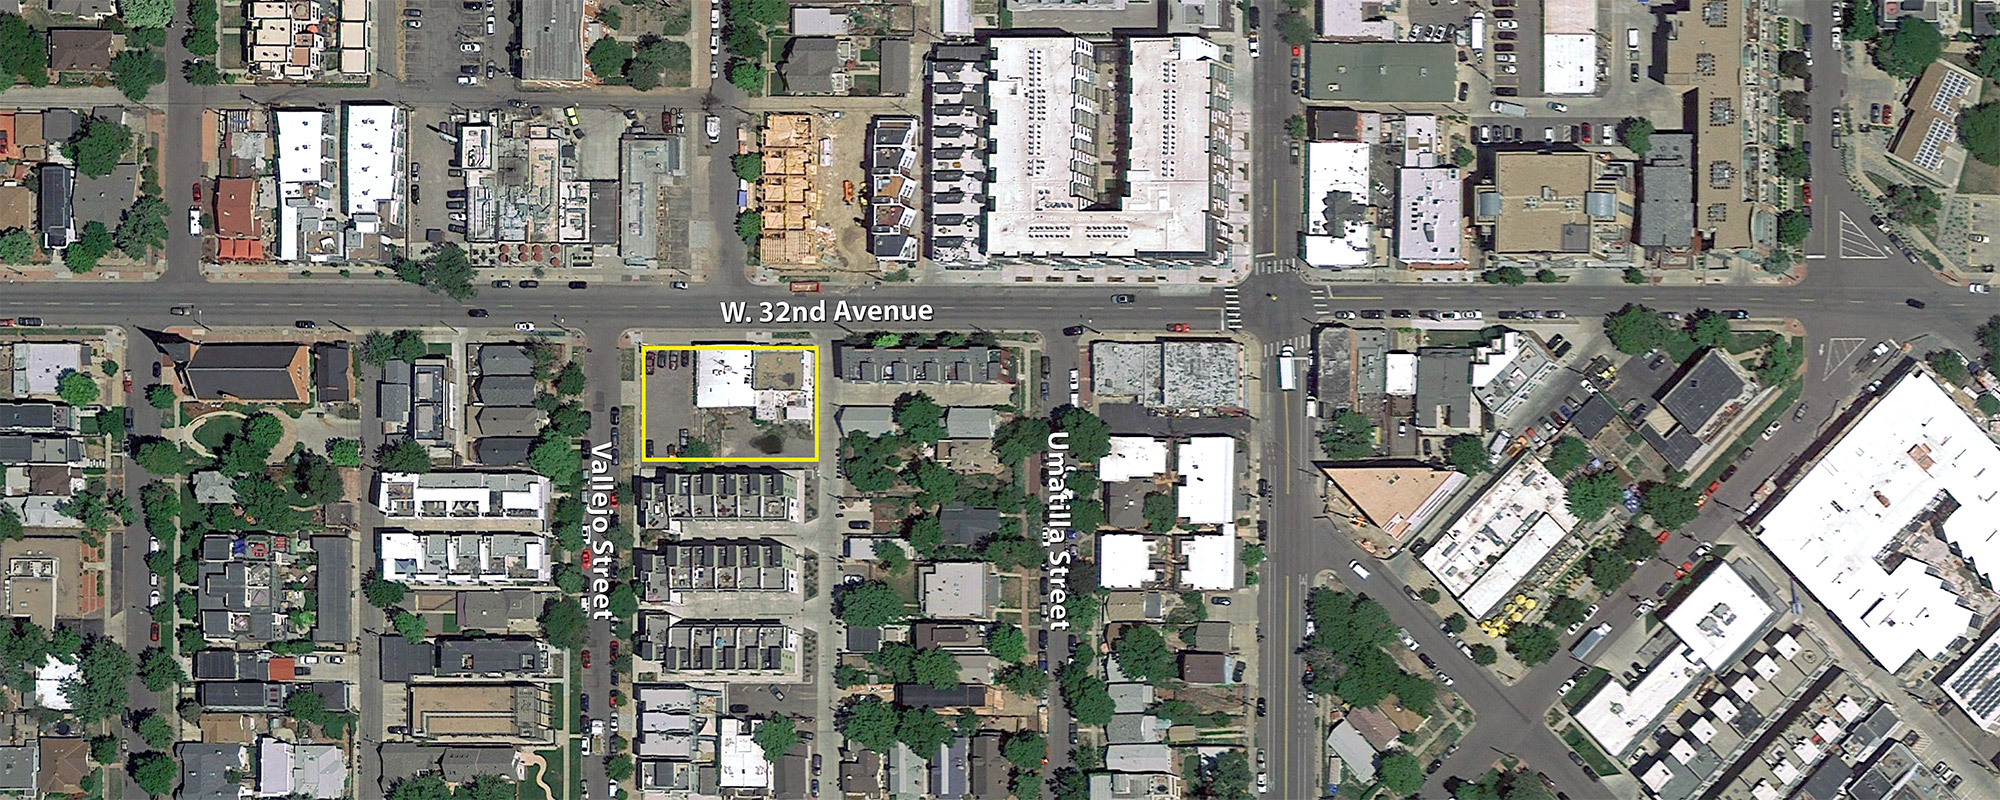 Location of the LoHi Offices on 32nd, base aerial courtesy of Google Earth